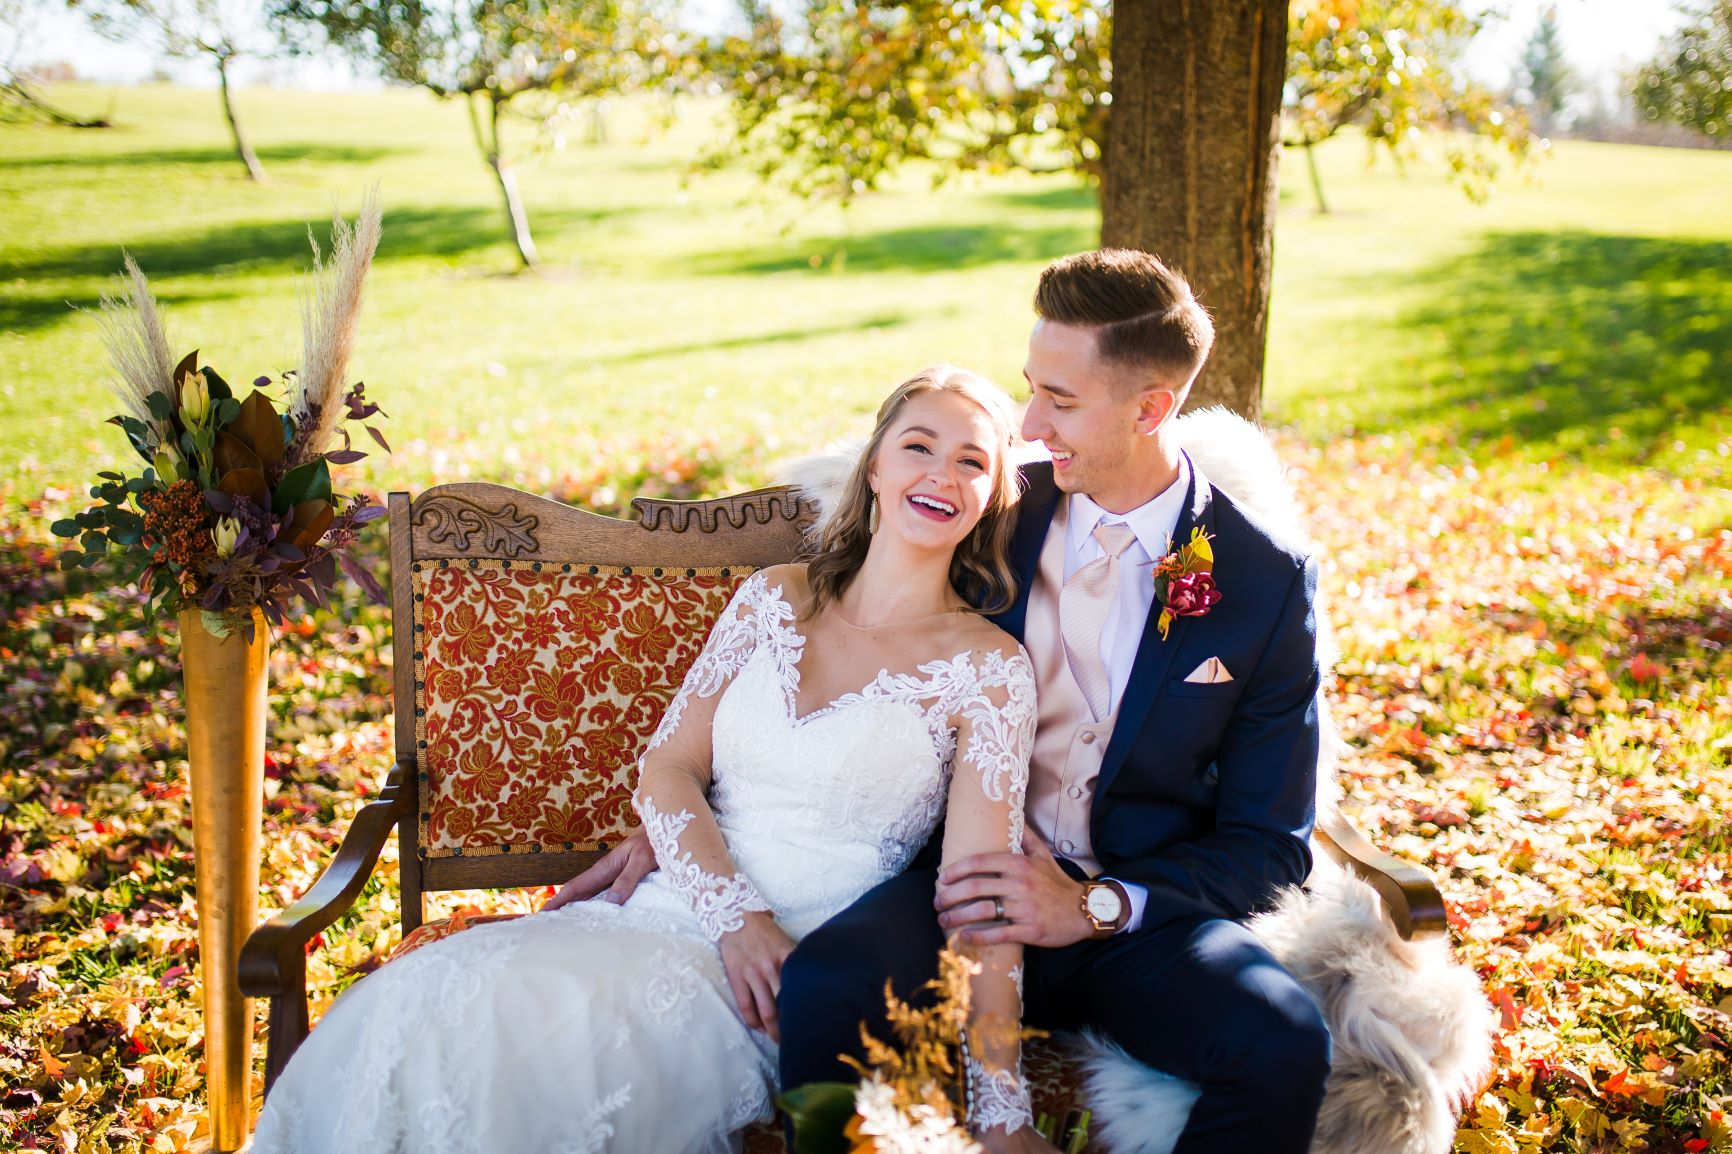 bride and groom sitting on a couch in a grassy area surrounded by fall foliage